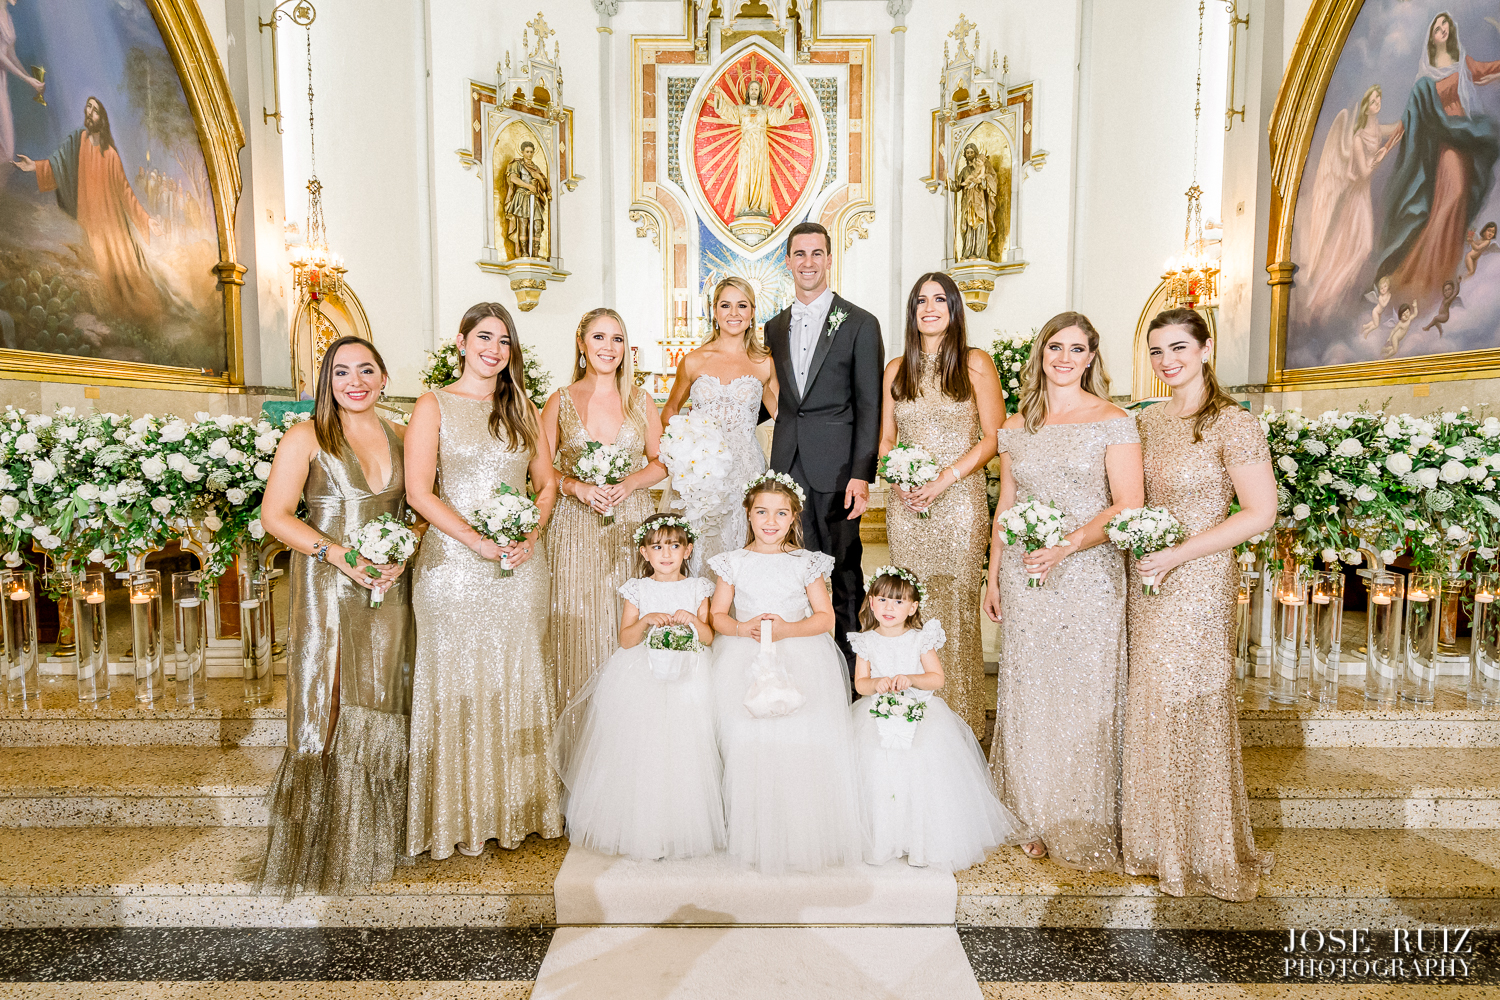 Jose Ruiz Photography- Carolina & Gabo Wedding Day-0113.jpg